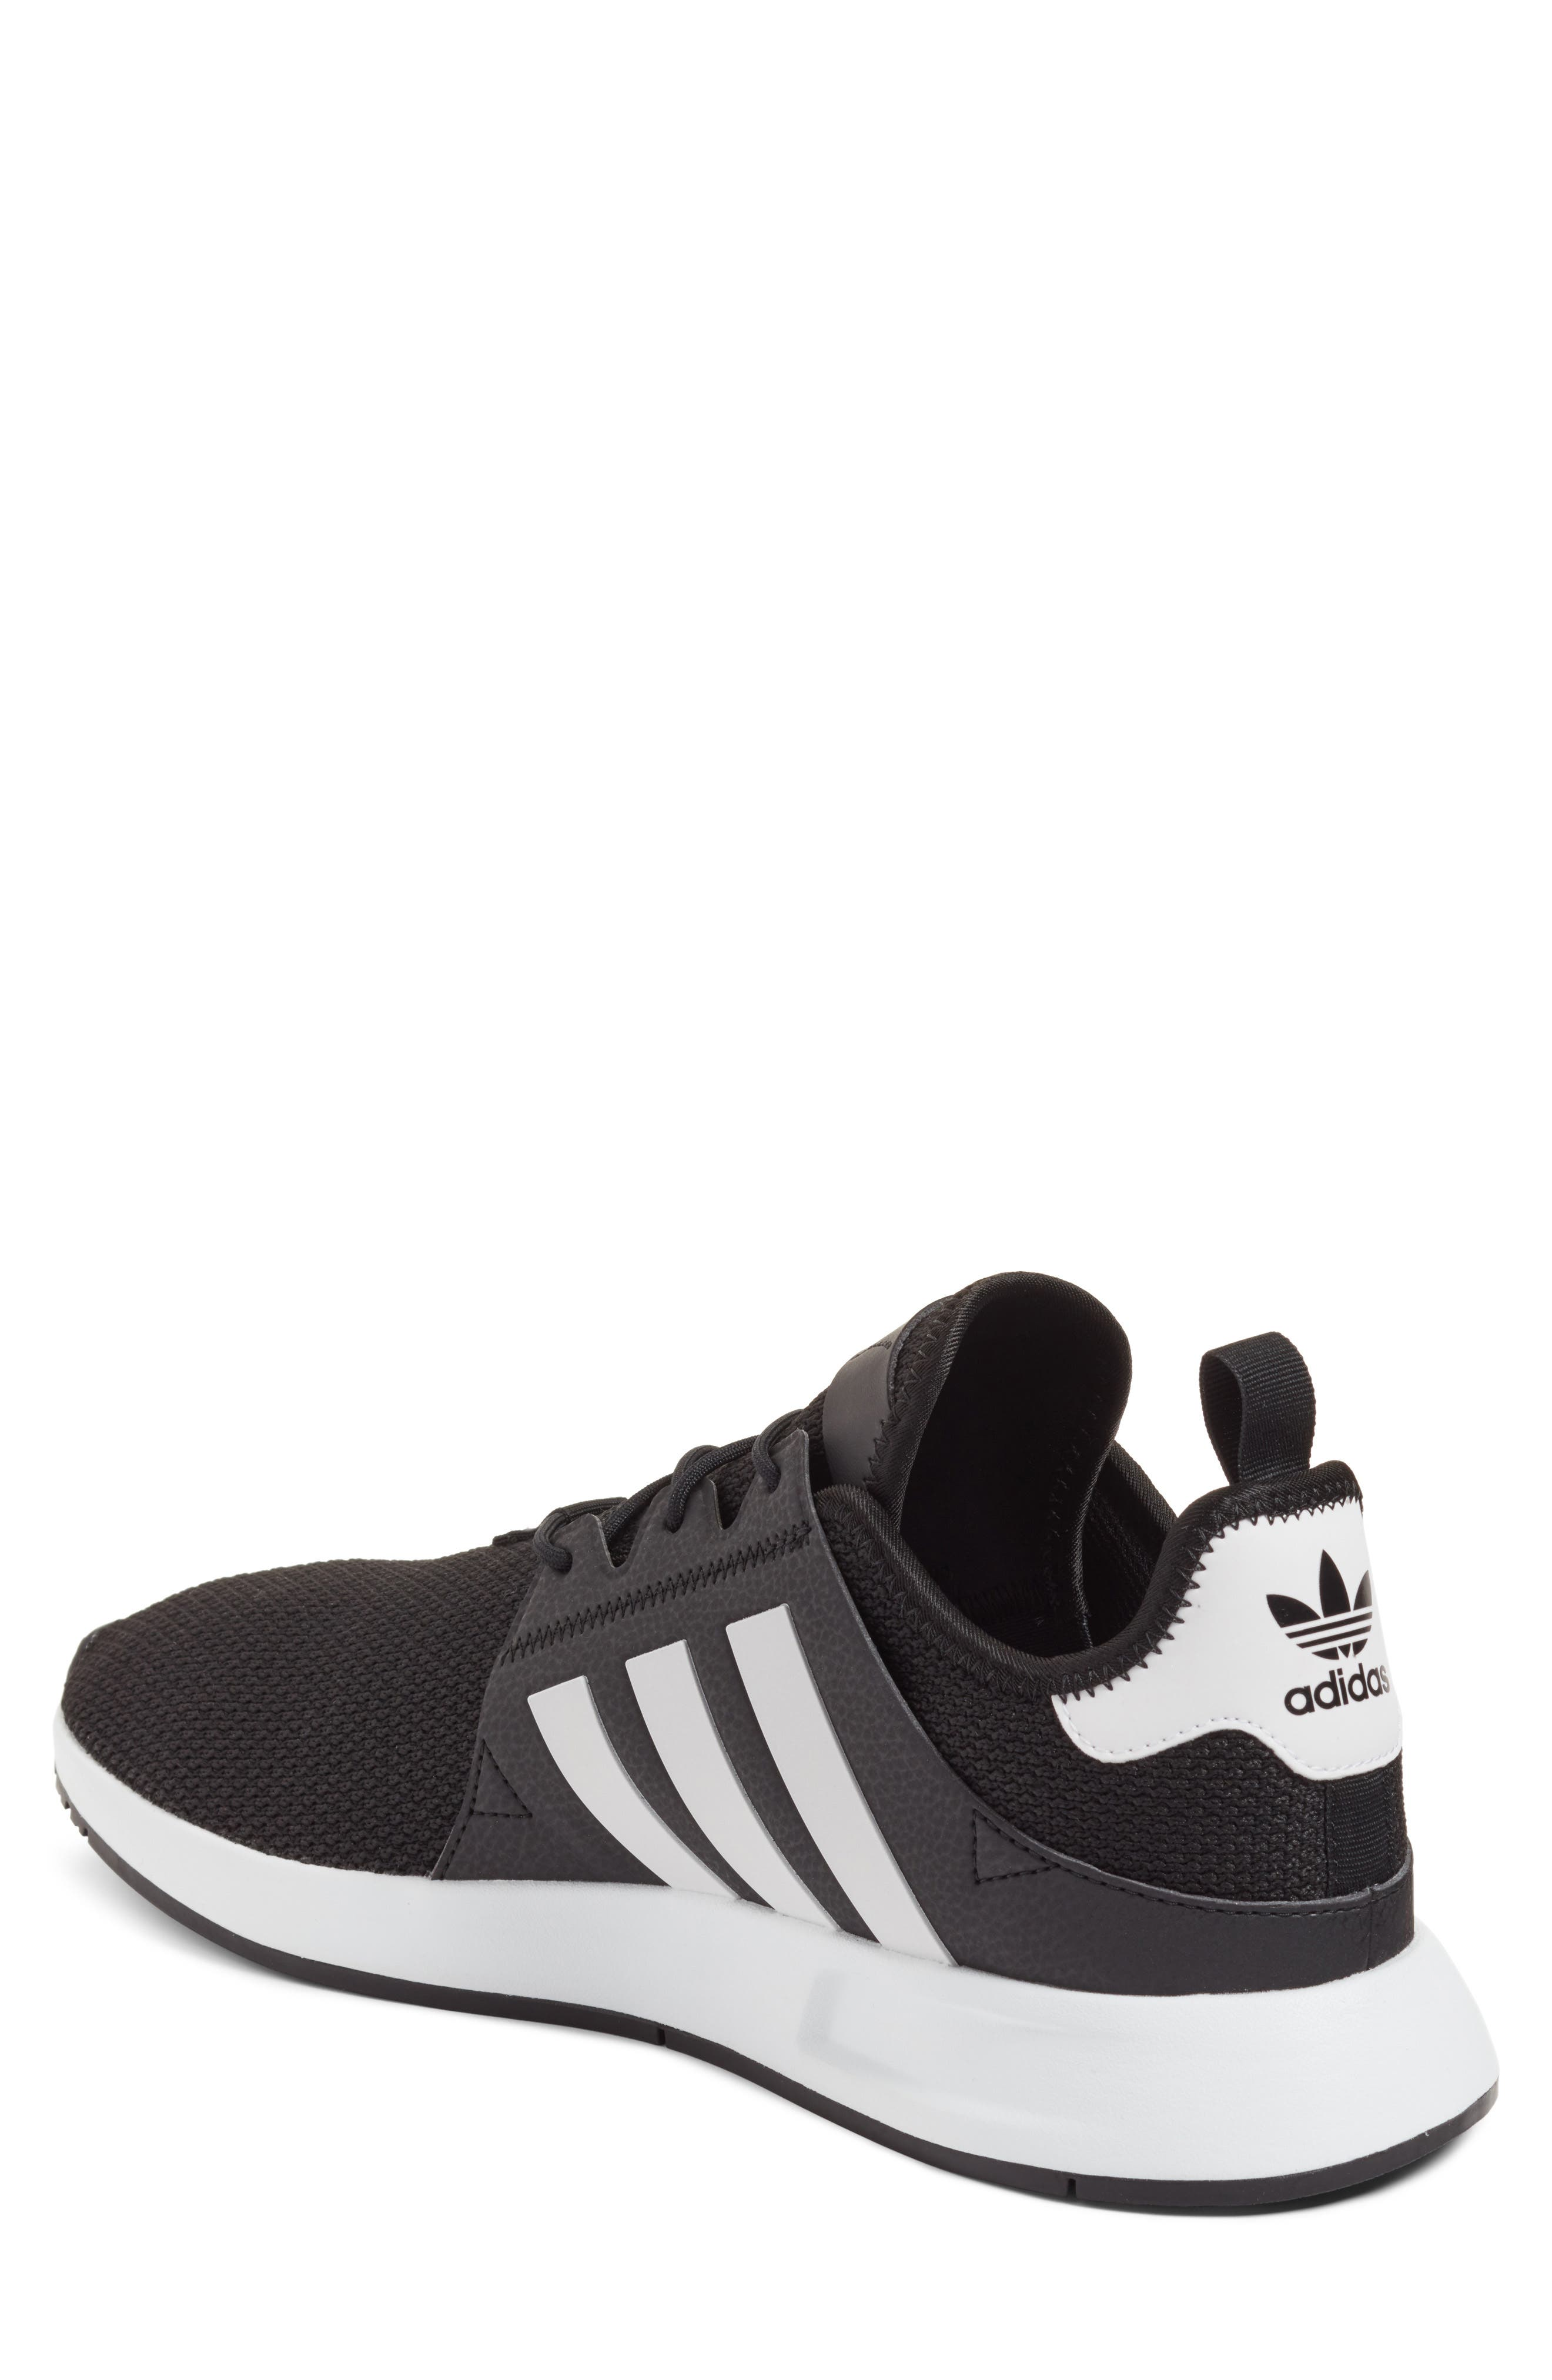 Men s Adidas Shoes  c398f60c4f0c5